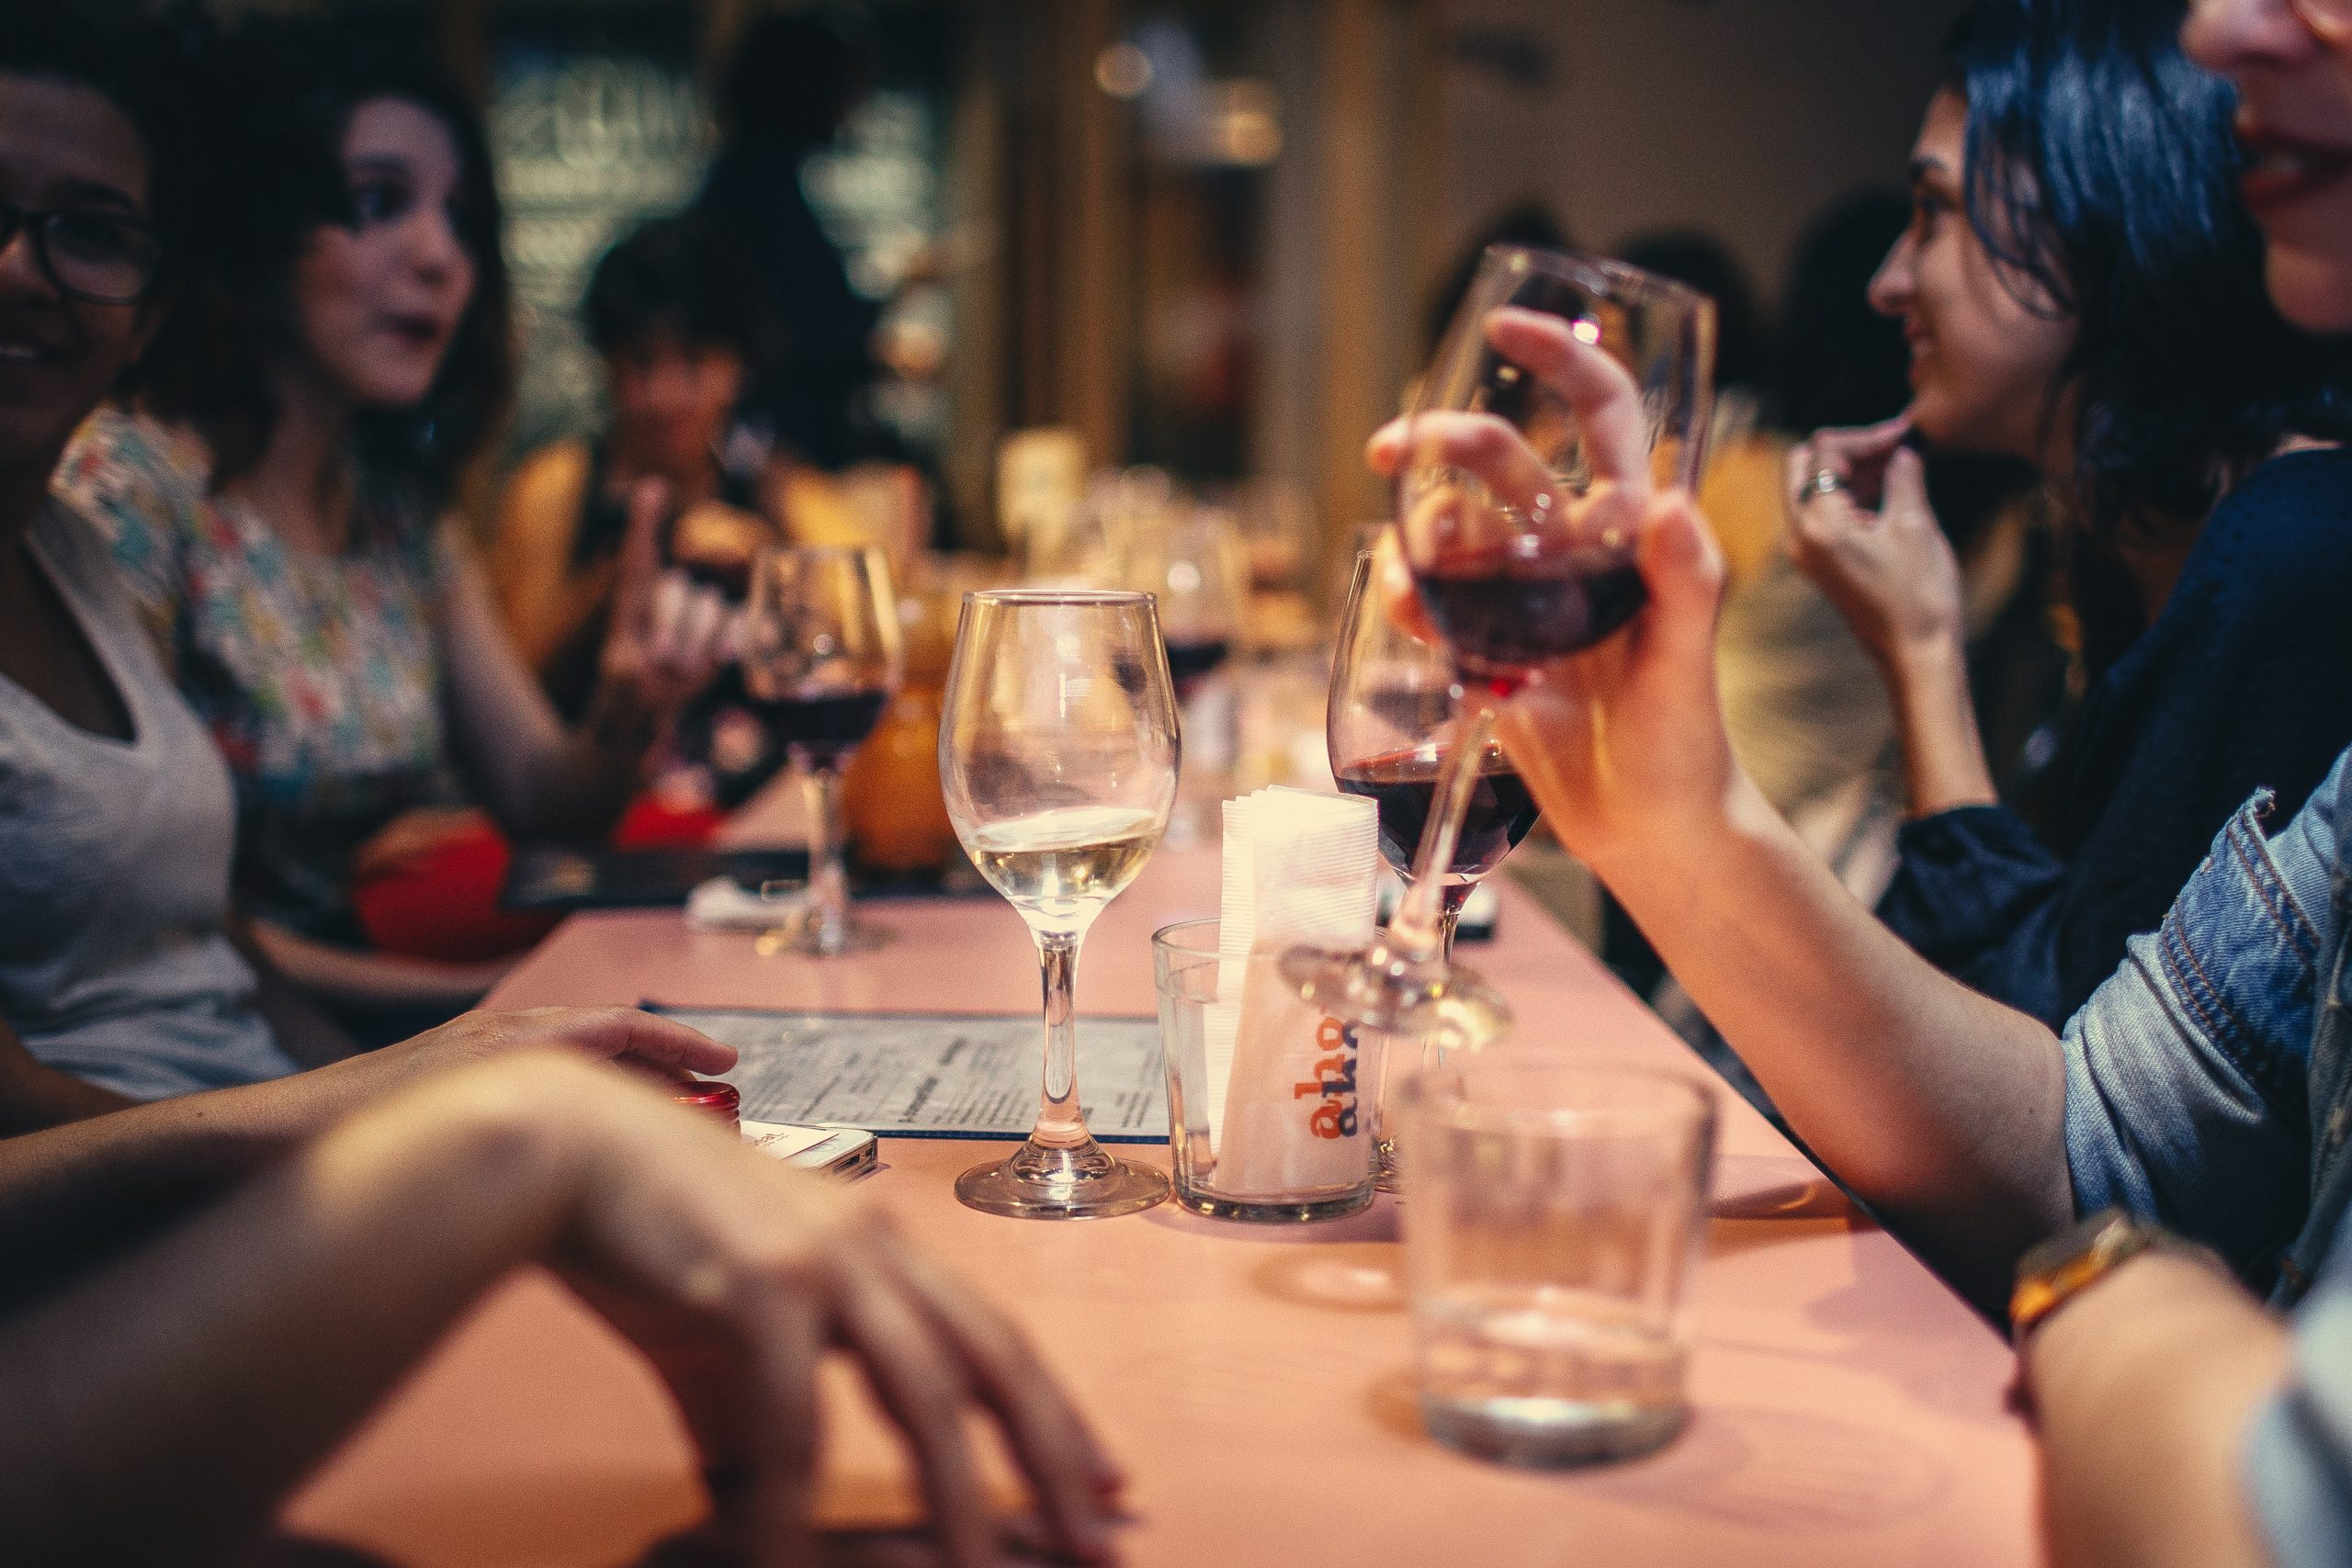 people-drinking-liquor-and-talking-on-dining-table-close-up-696218